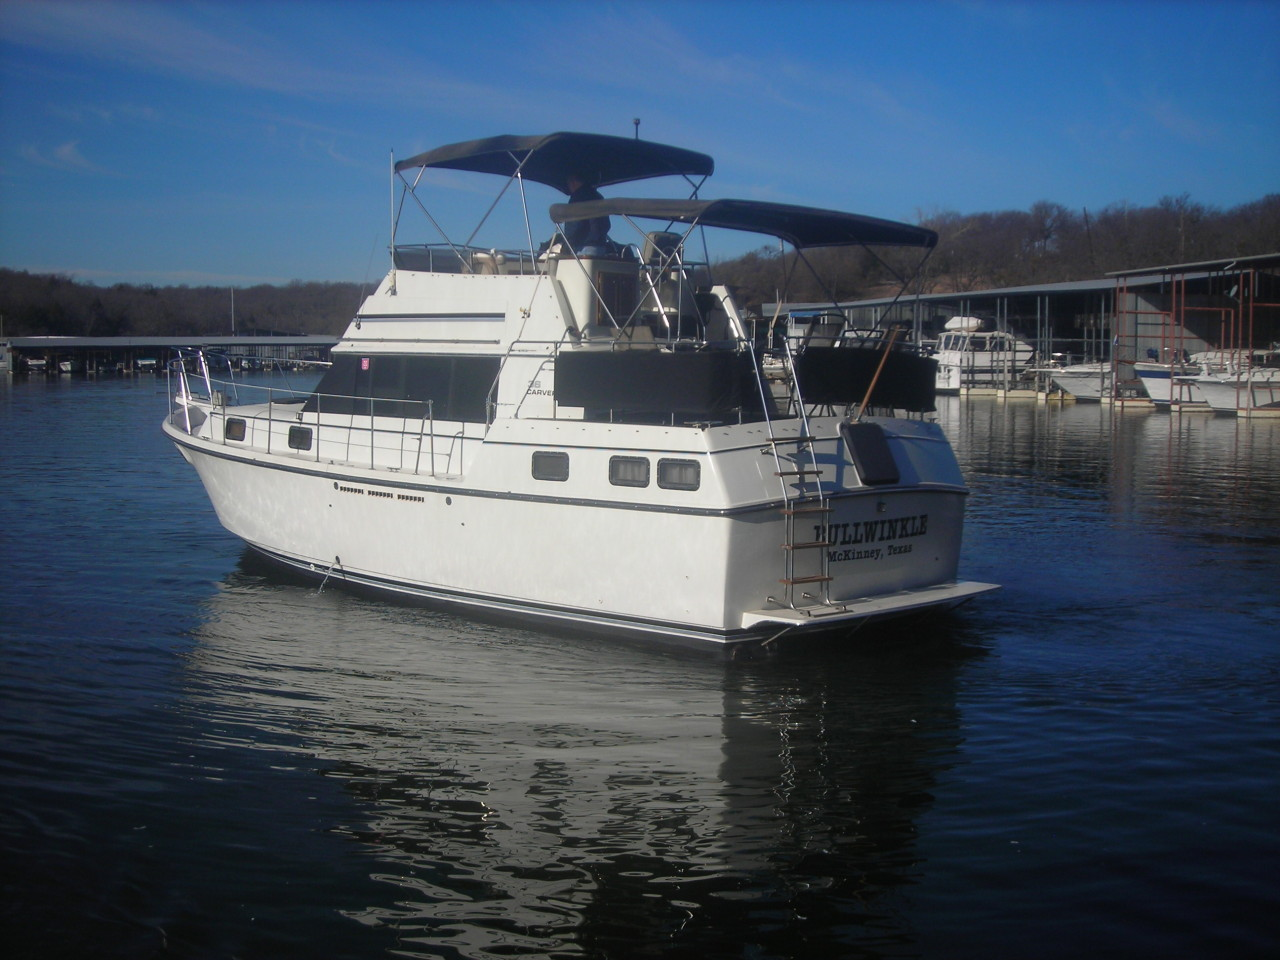 http://eisenhoweryachtclub.com/wp-content/uploads/new-boat-pictures-013.jpg